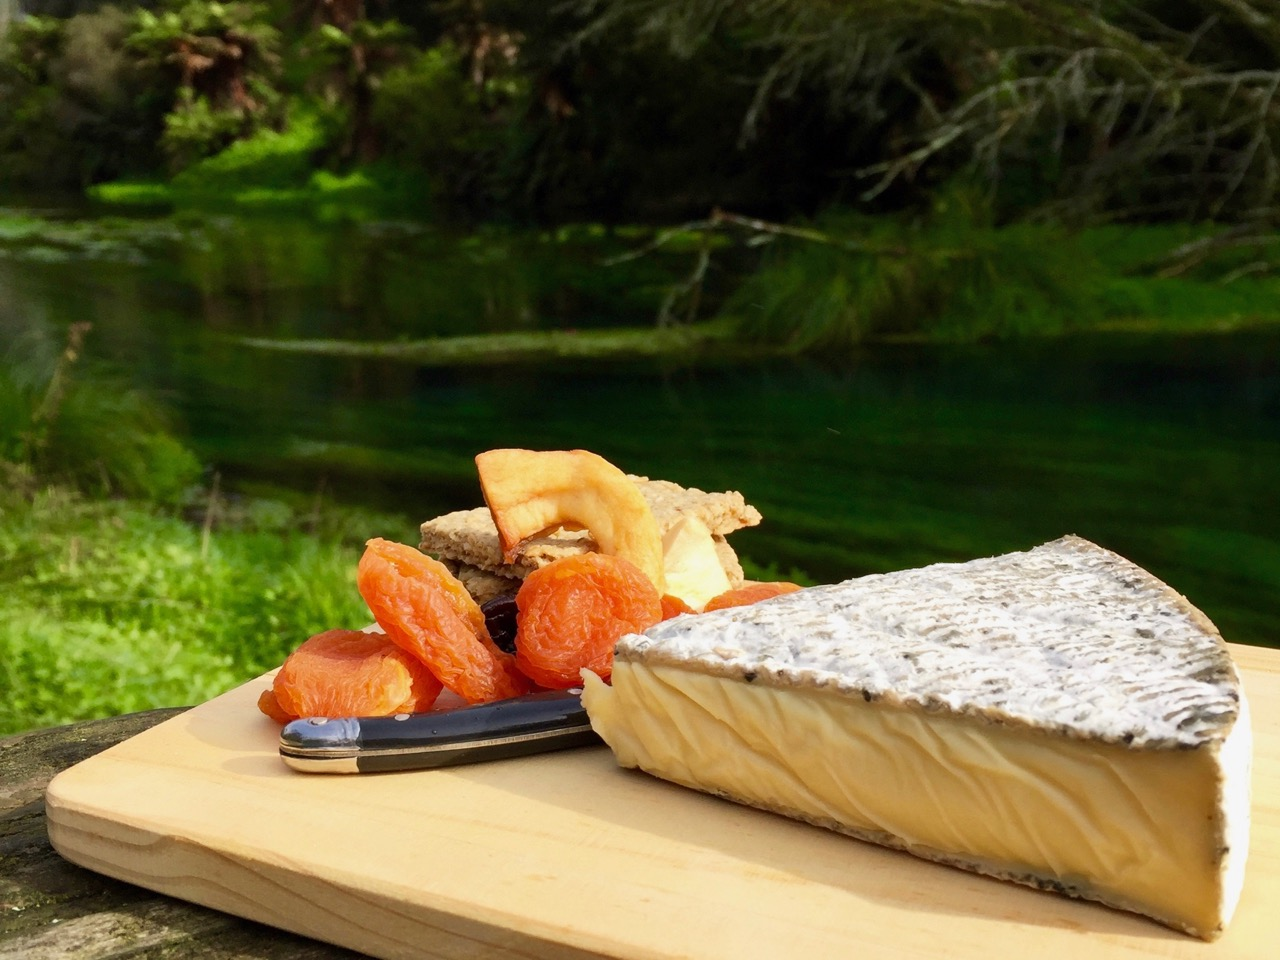 picnic cheese and fruit